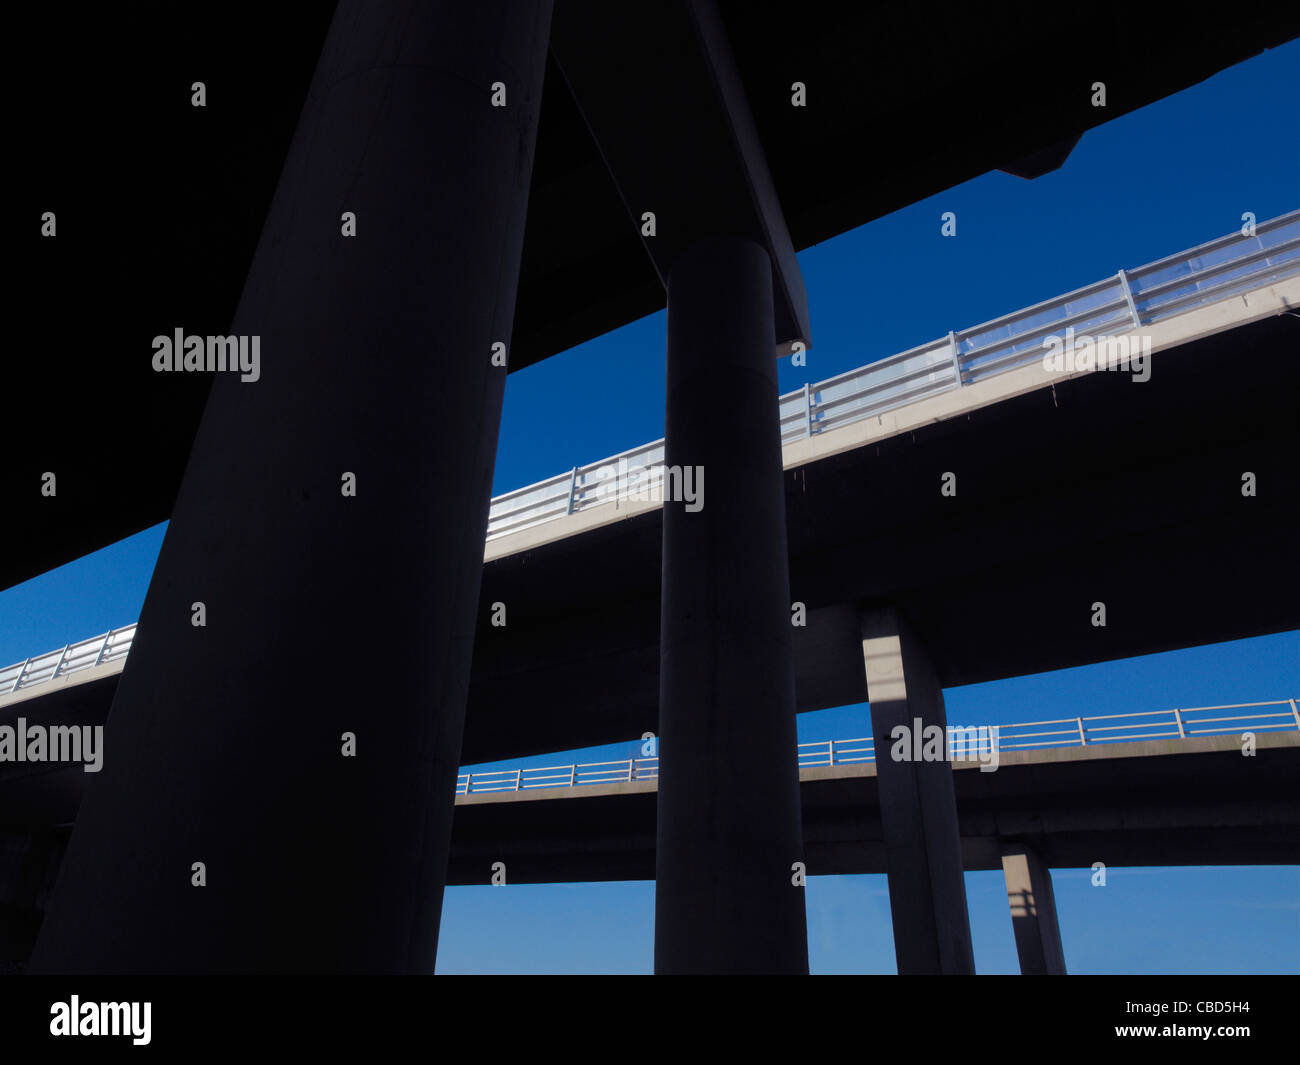 Pillars holding up overpasses - Stock Image